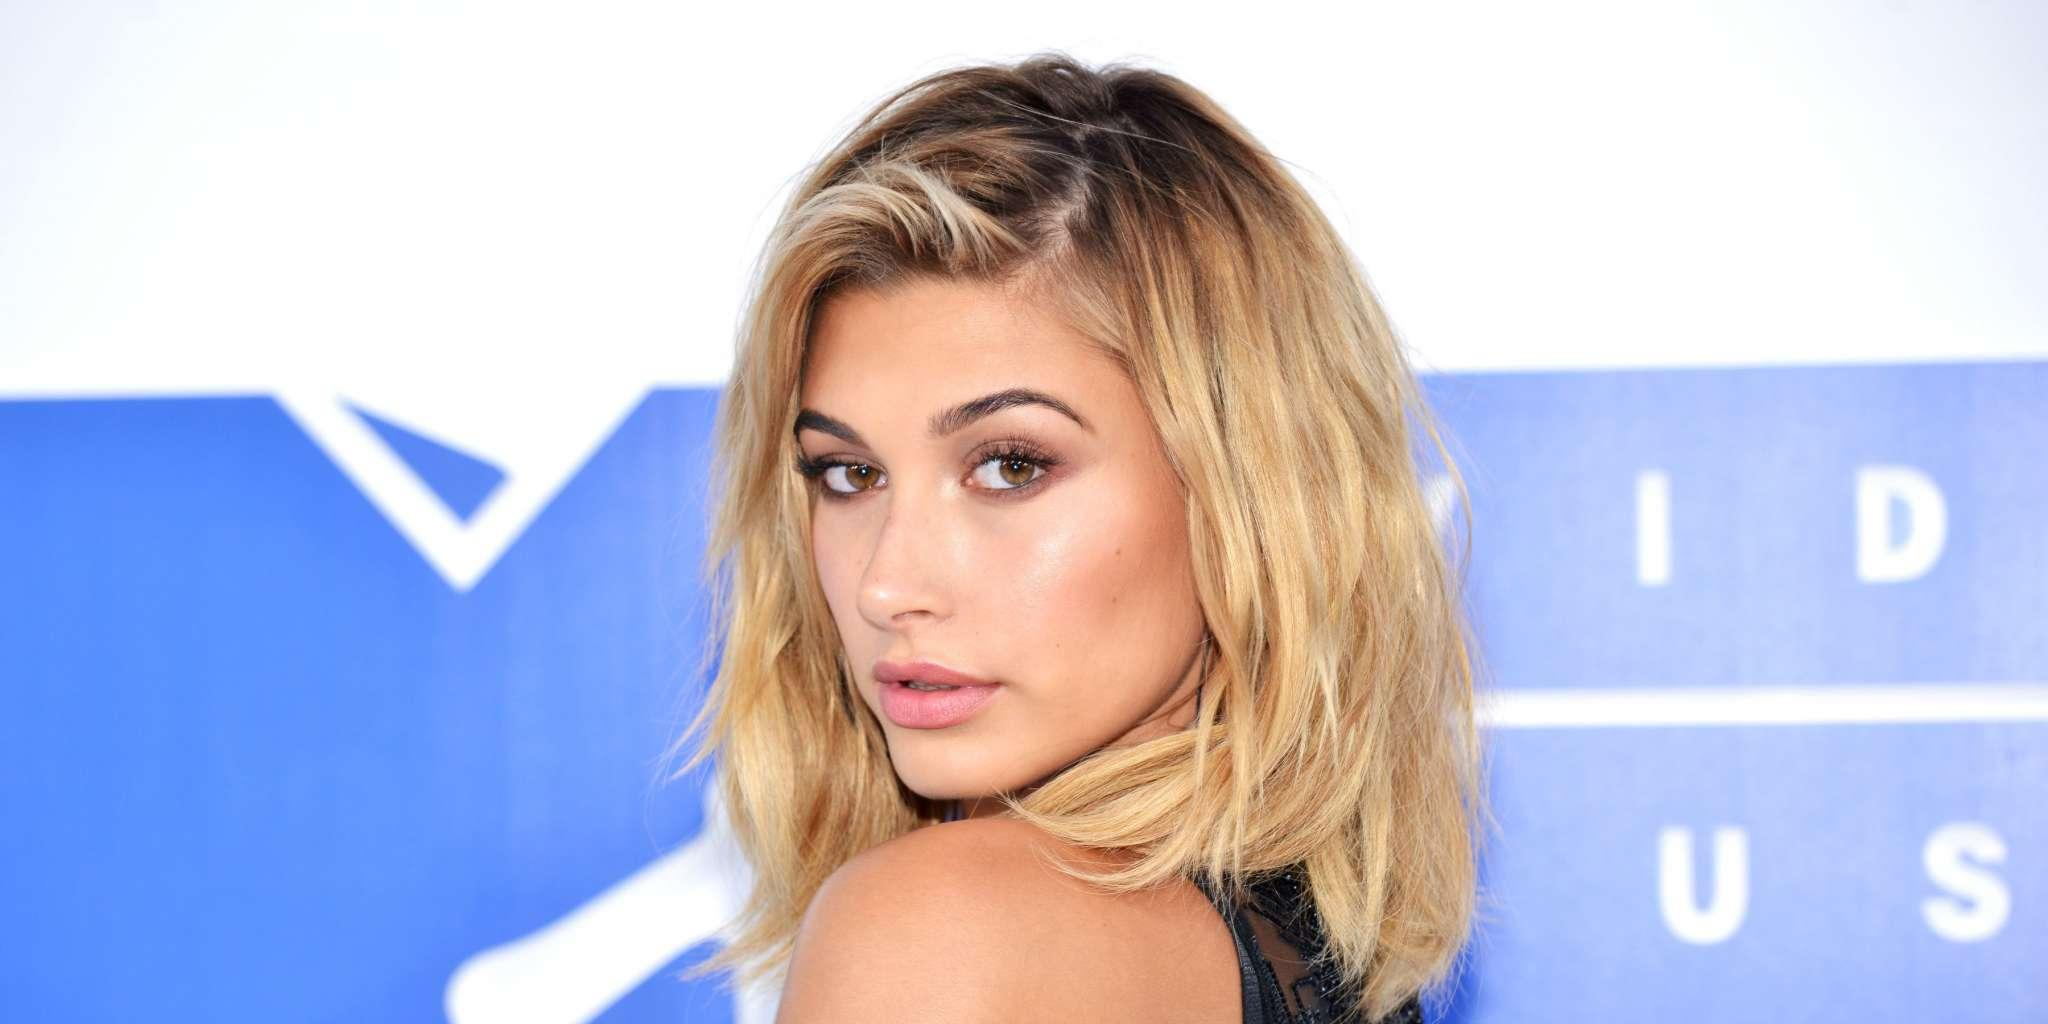 Hailey Baldwin Reportedly Inspired By Kylie Jenner To Launch Bieber Beauty Line